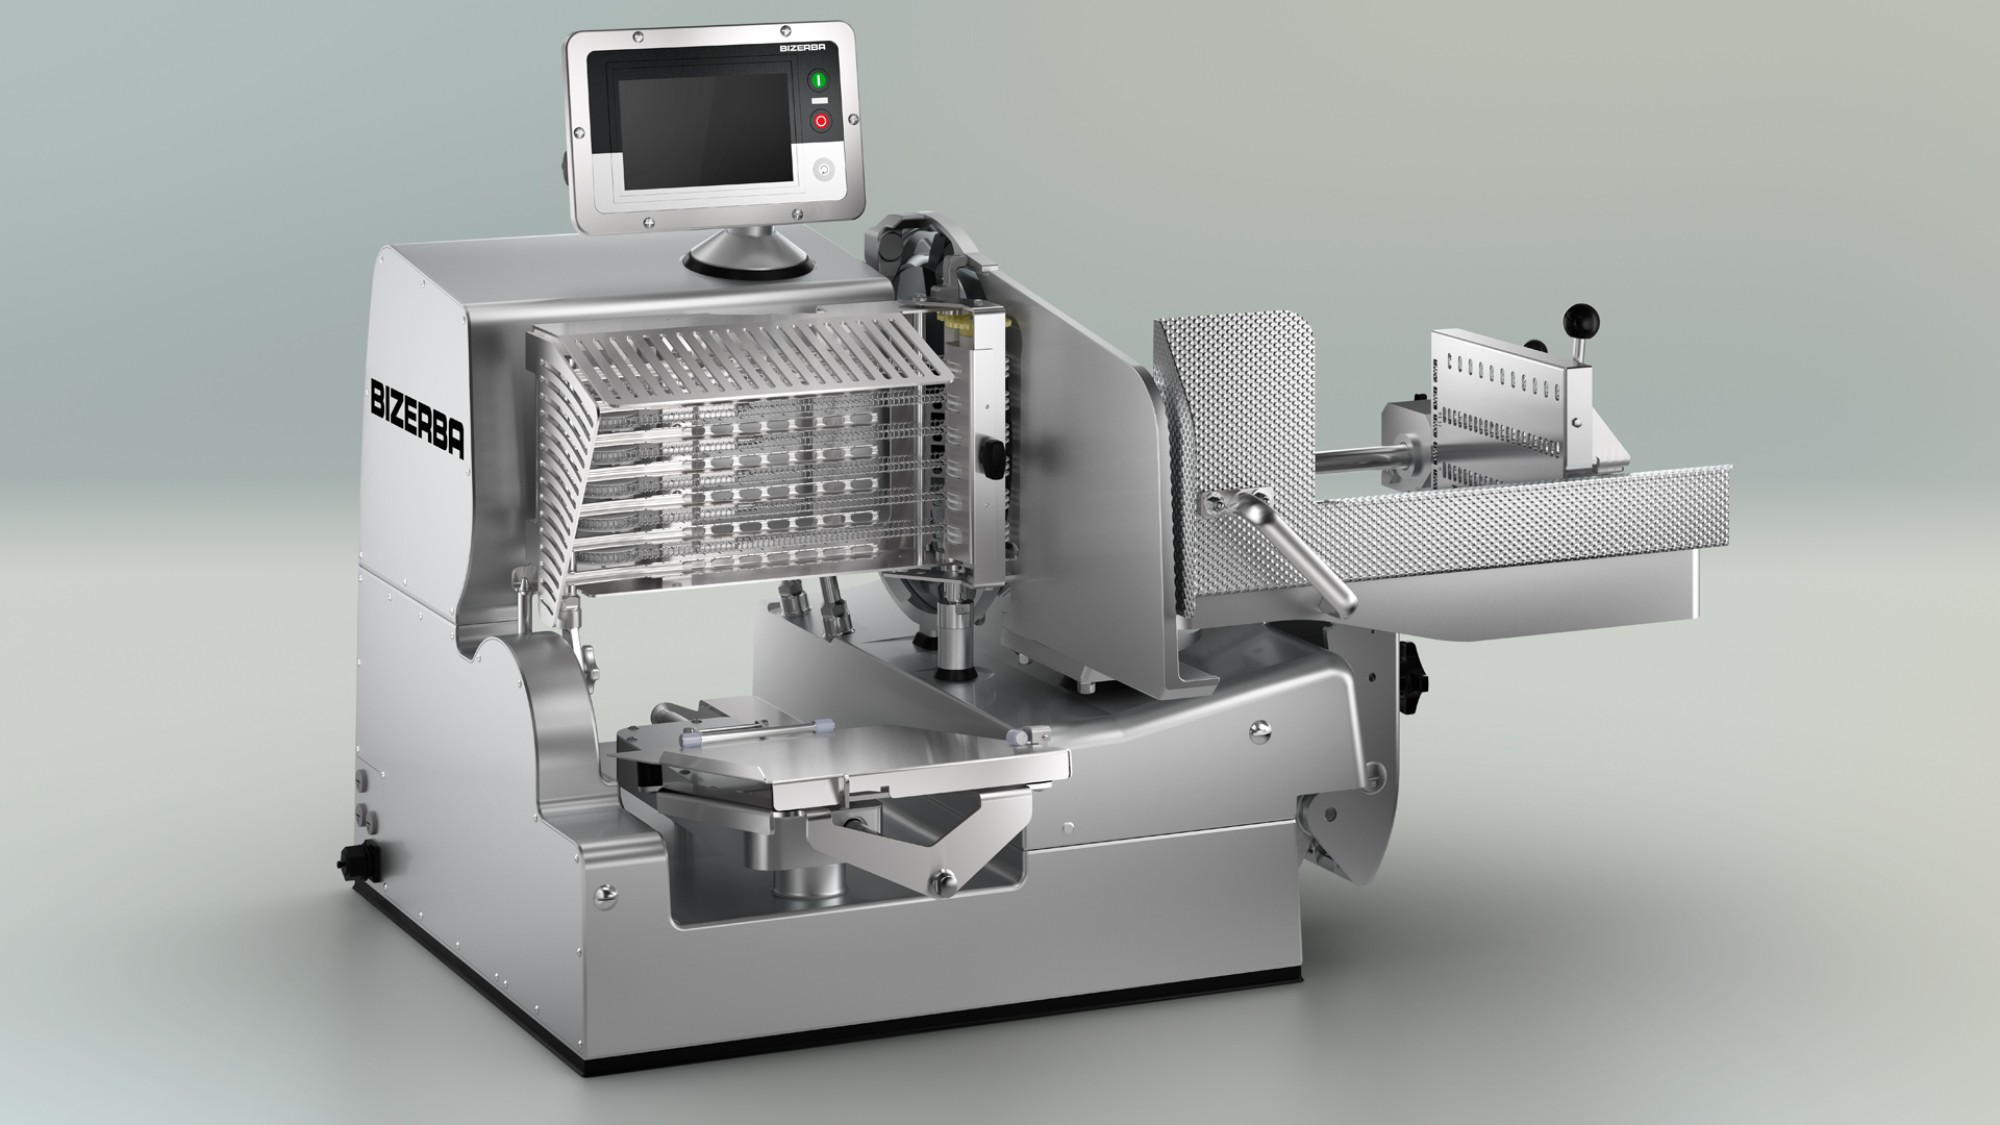 Caption: The different models of the VSI vertical slicer provide high slicing performance at maximum operator safety due to the sophisticated safety concept